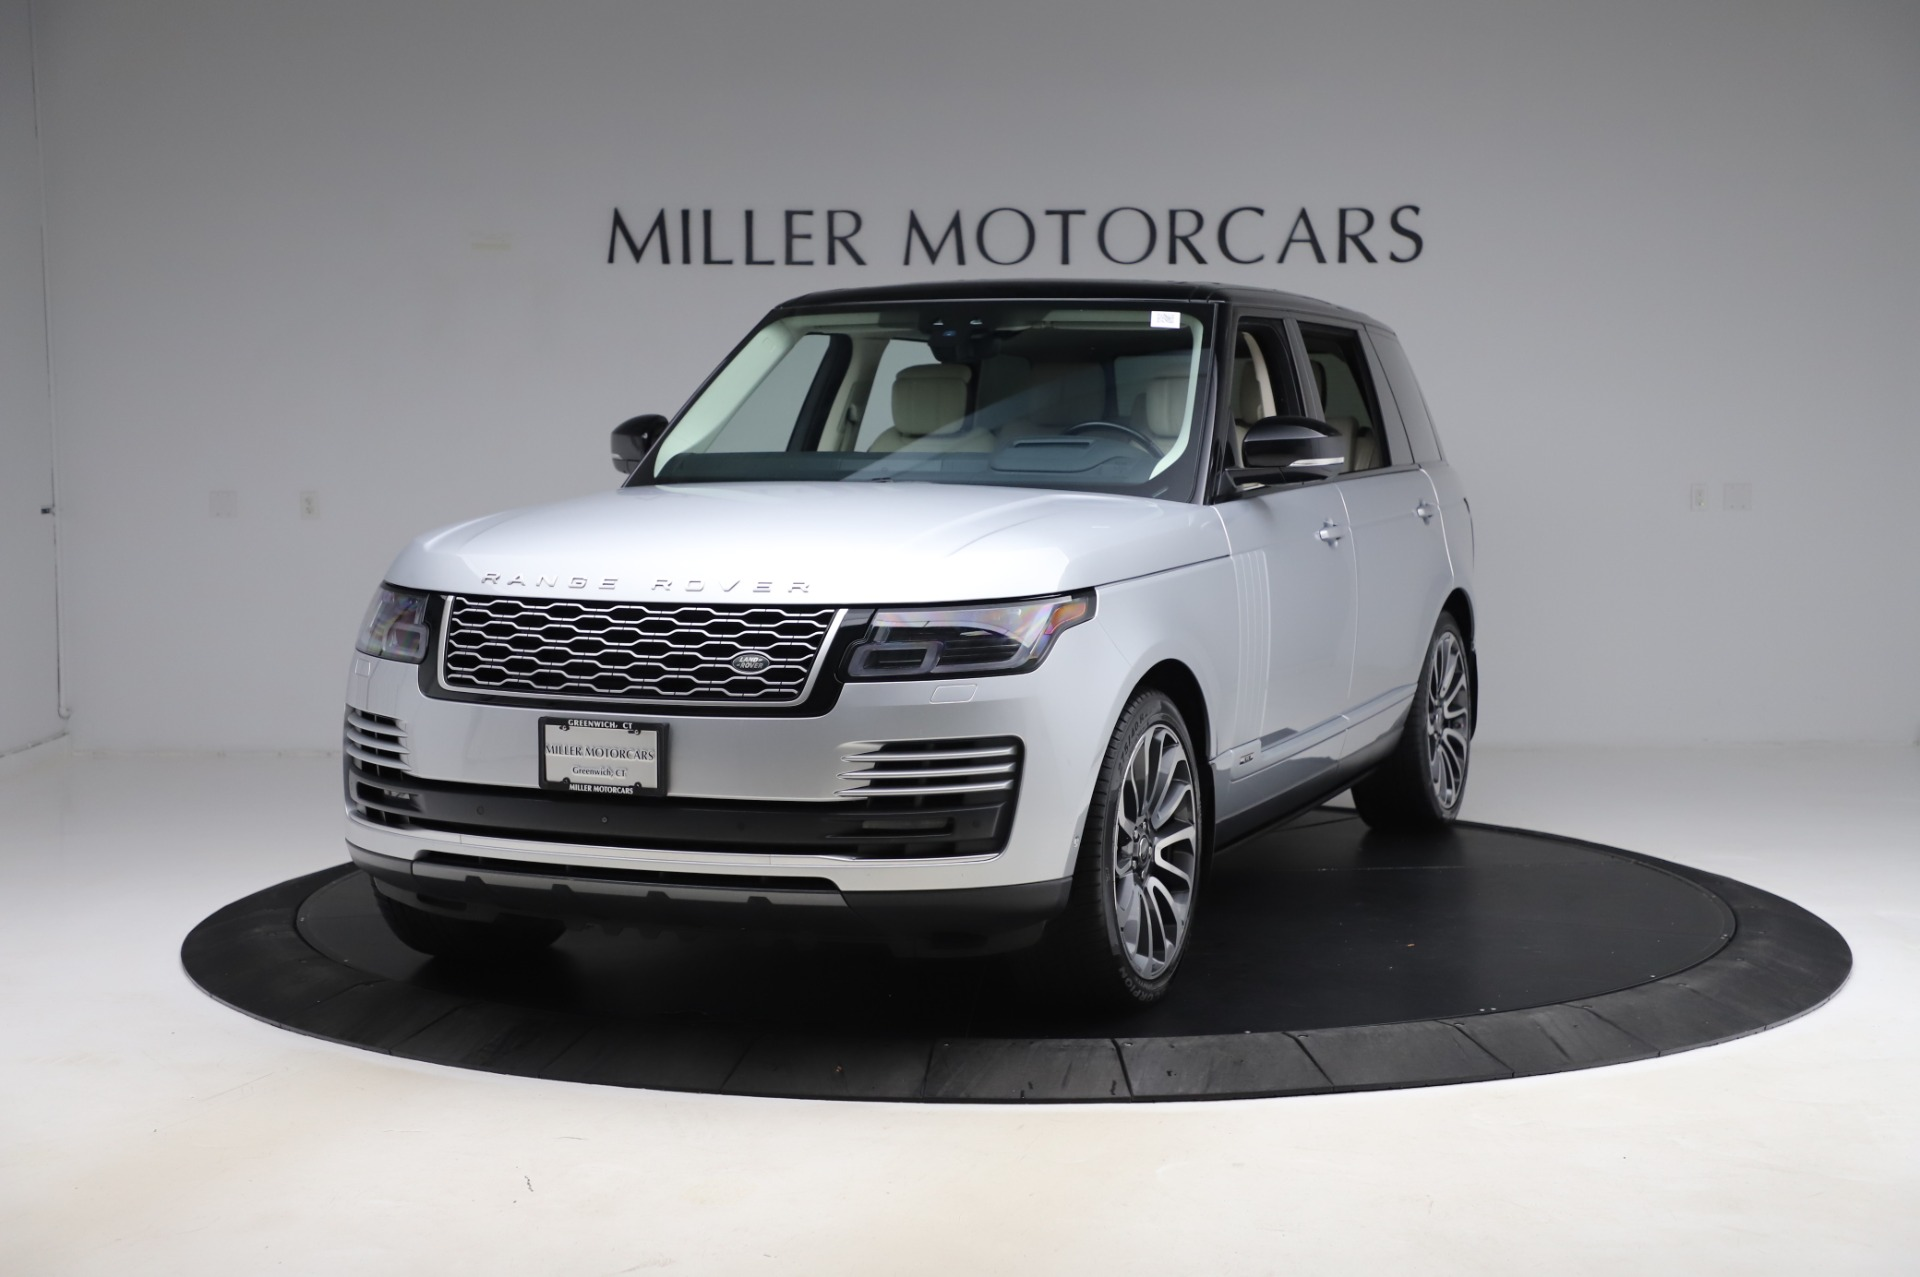 Used 2019 Land Rover Range Rover Supercharged LWB for sale Sold at Alfa Romeo of Greenwich in Greenwich CT 06830 1